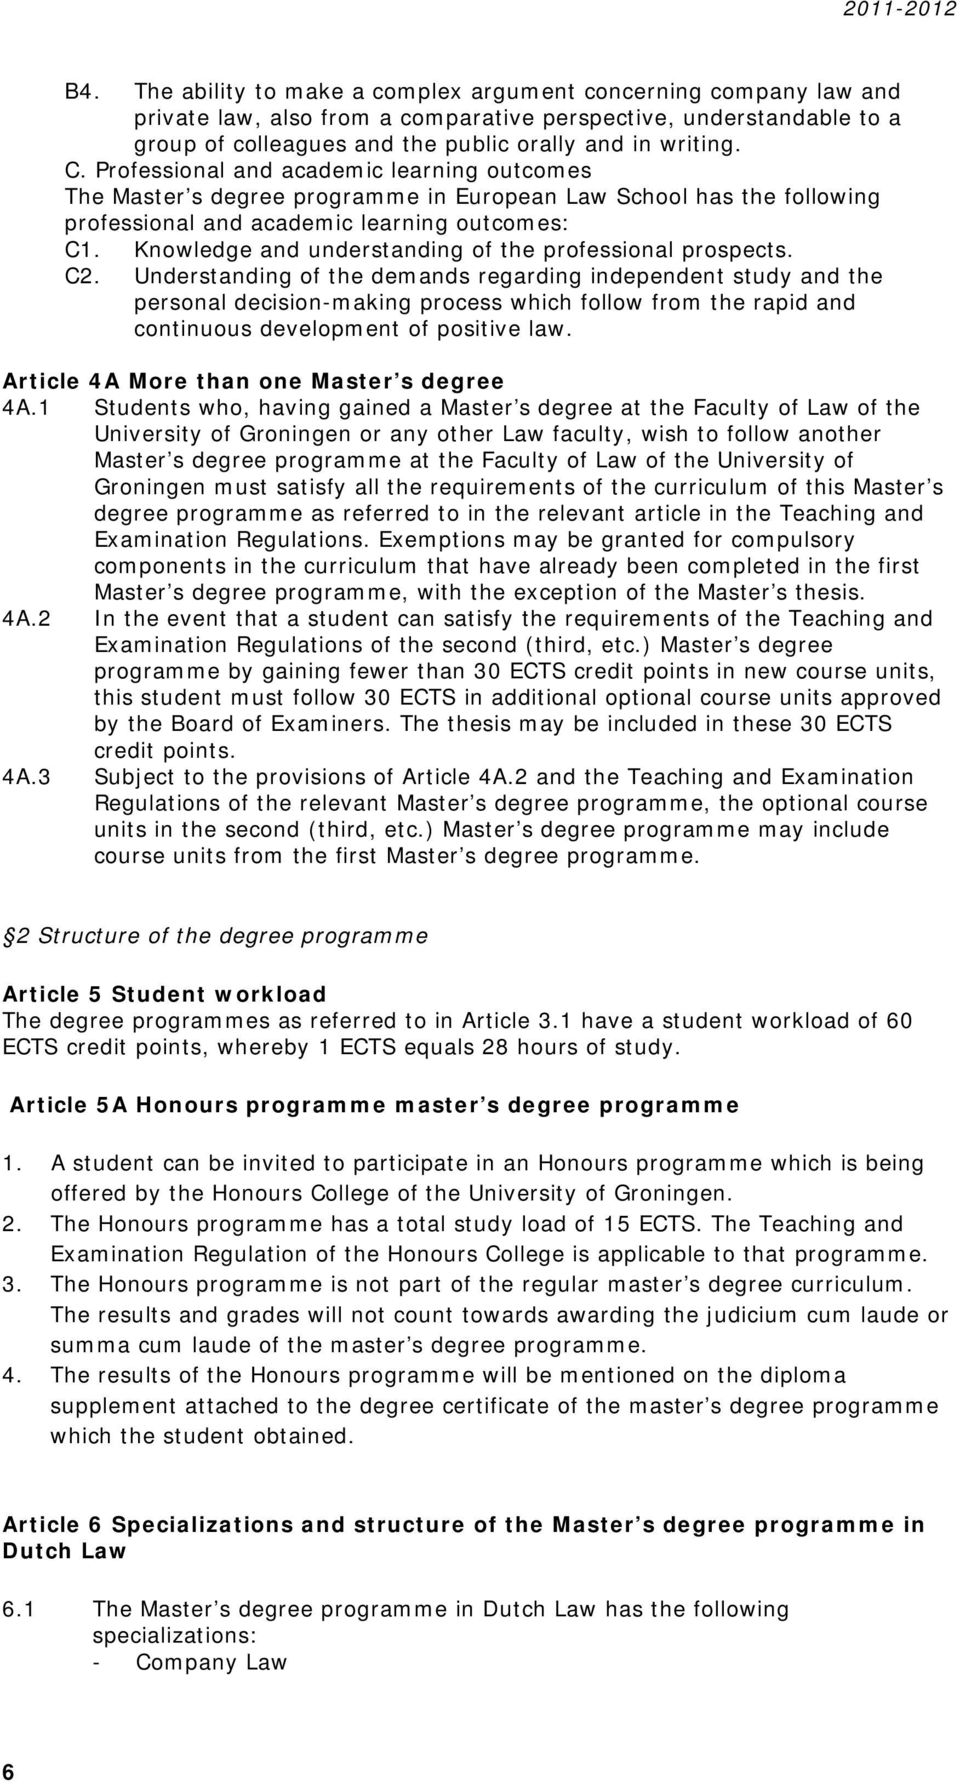 Professional and academic learning outcomes The Master s degree programme in European Law School has the following professional and academic learning outcomes: C1.